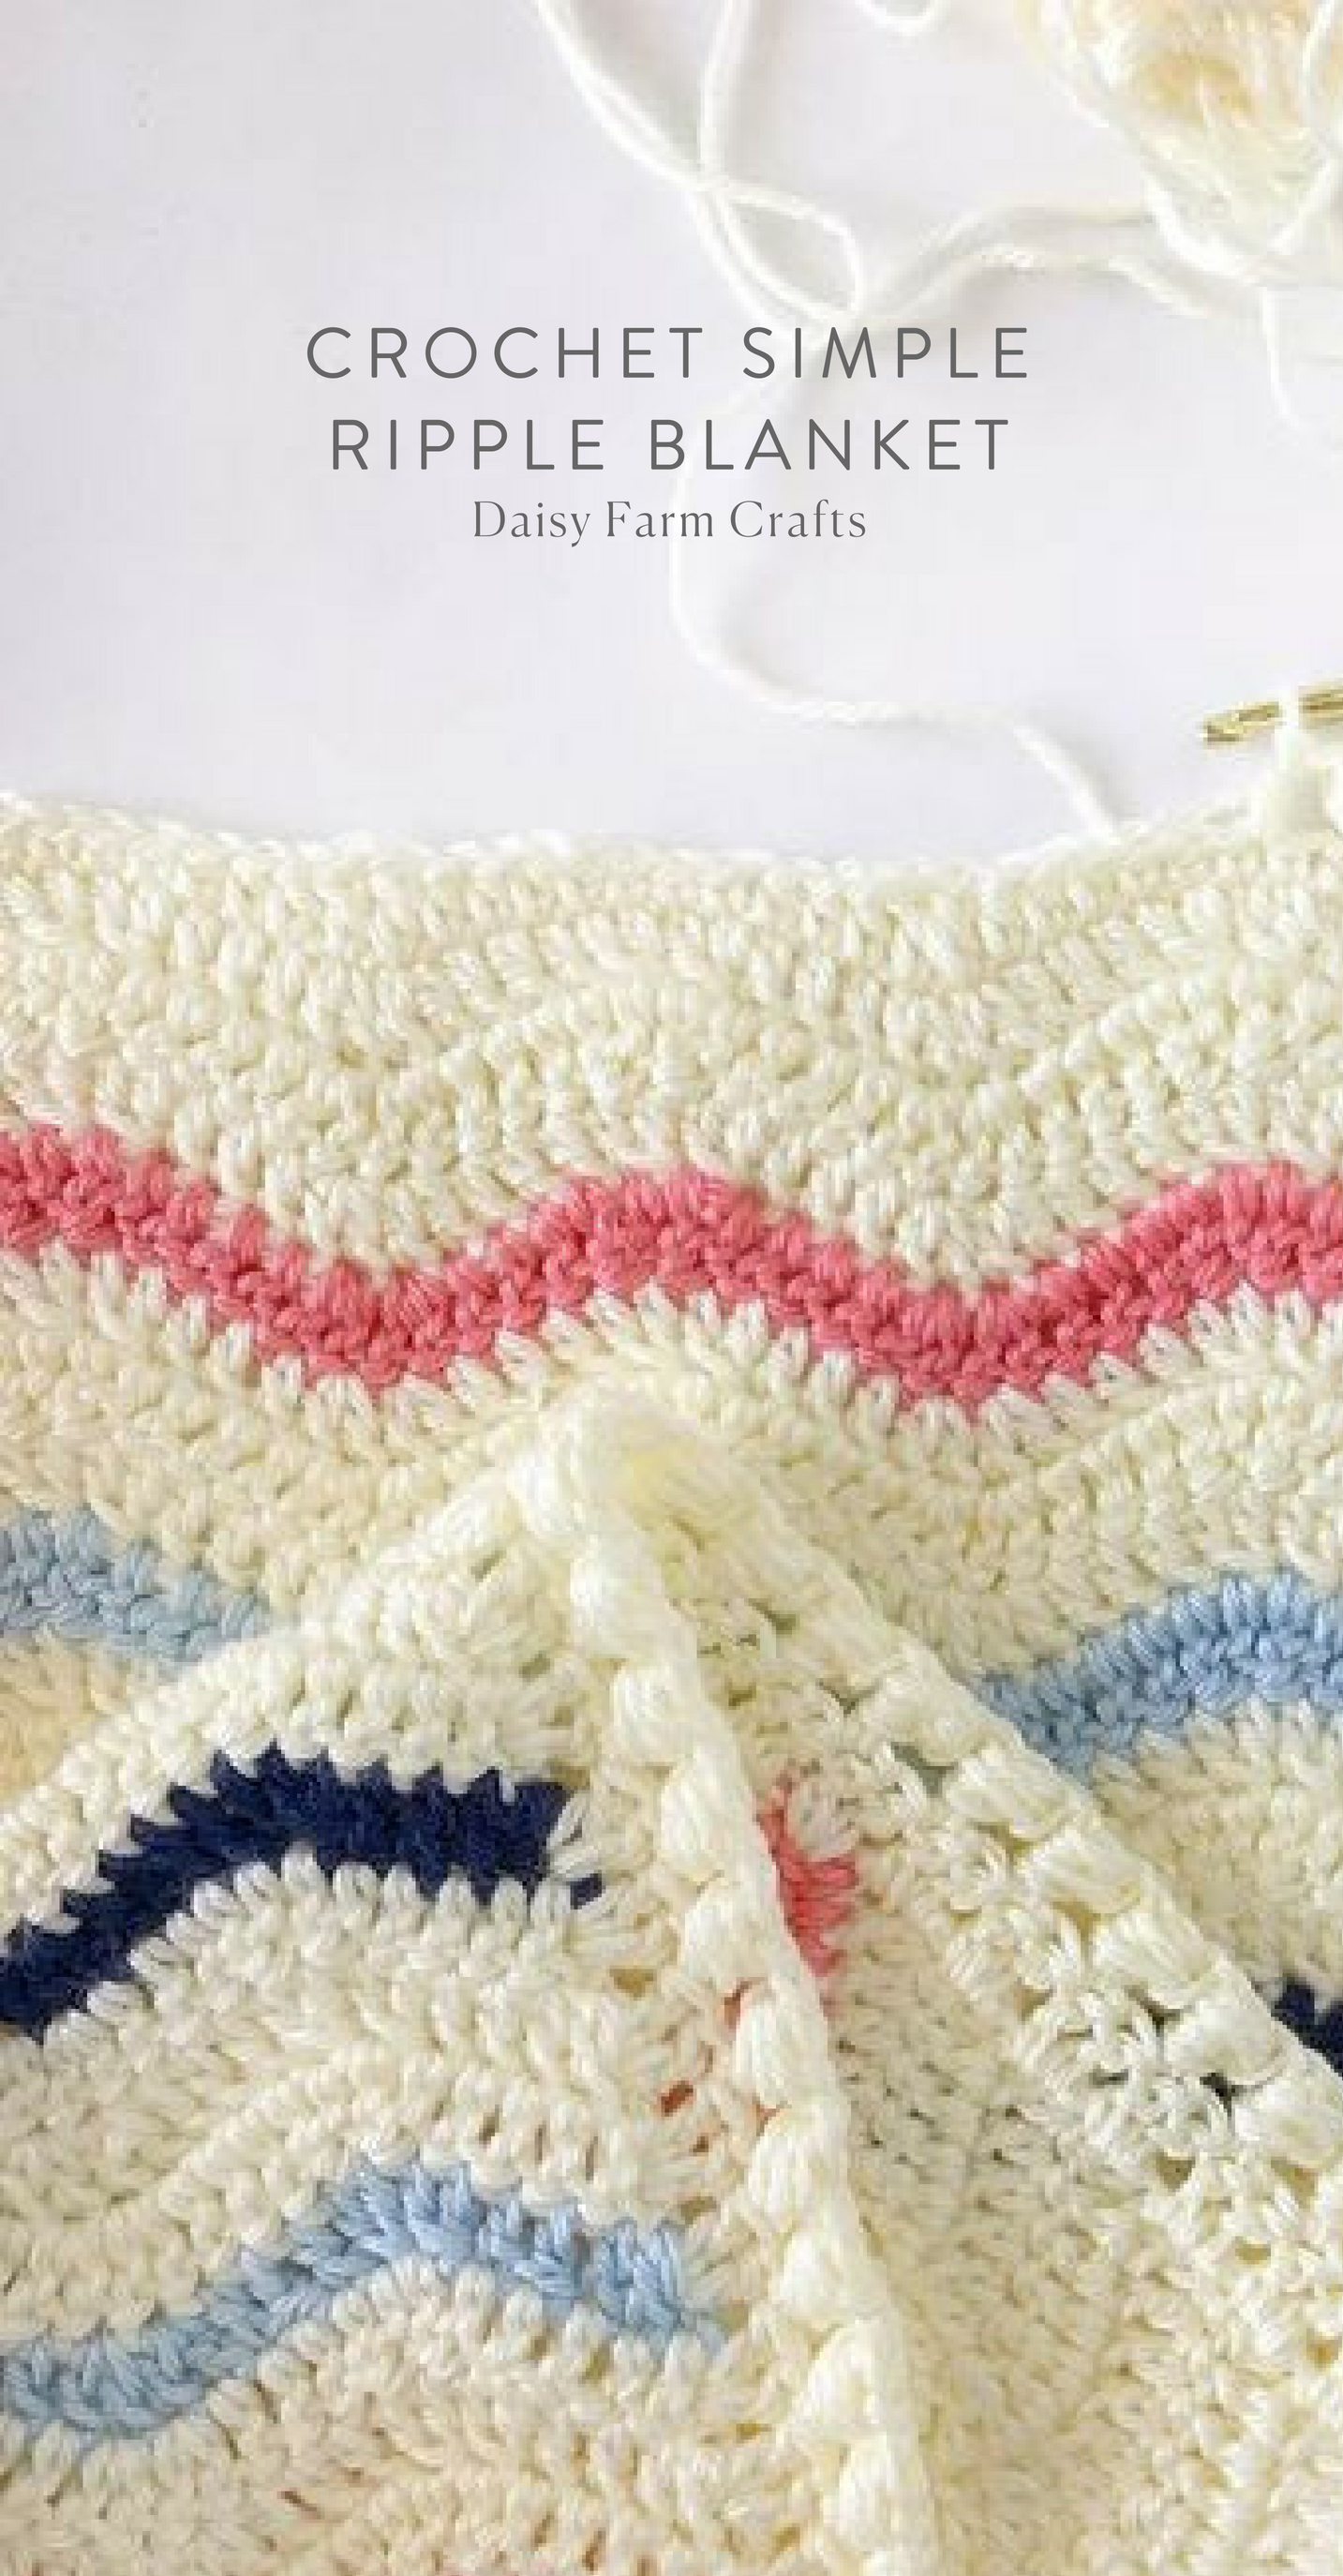 Free Pattern - Crochet Simple Ripple Blanket | Crochet | Pinterest ...